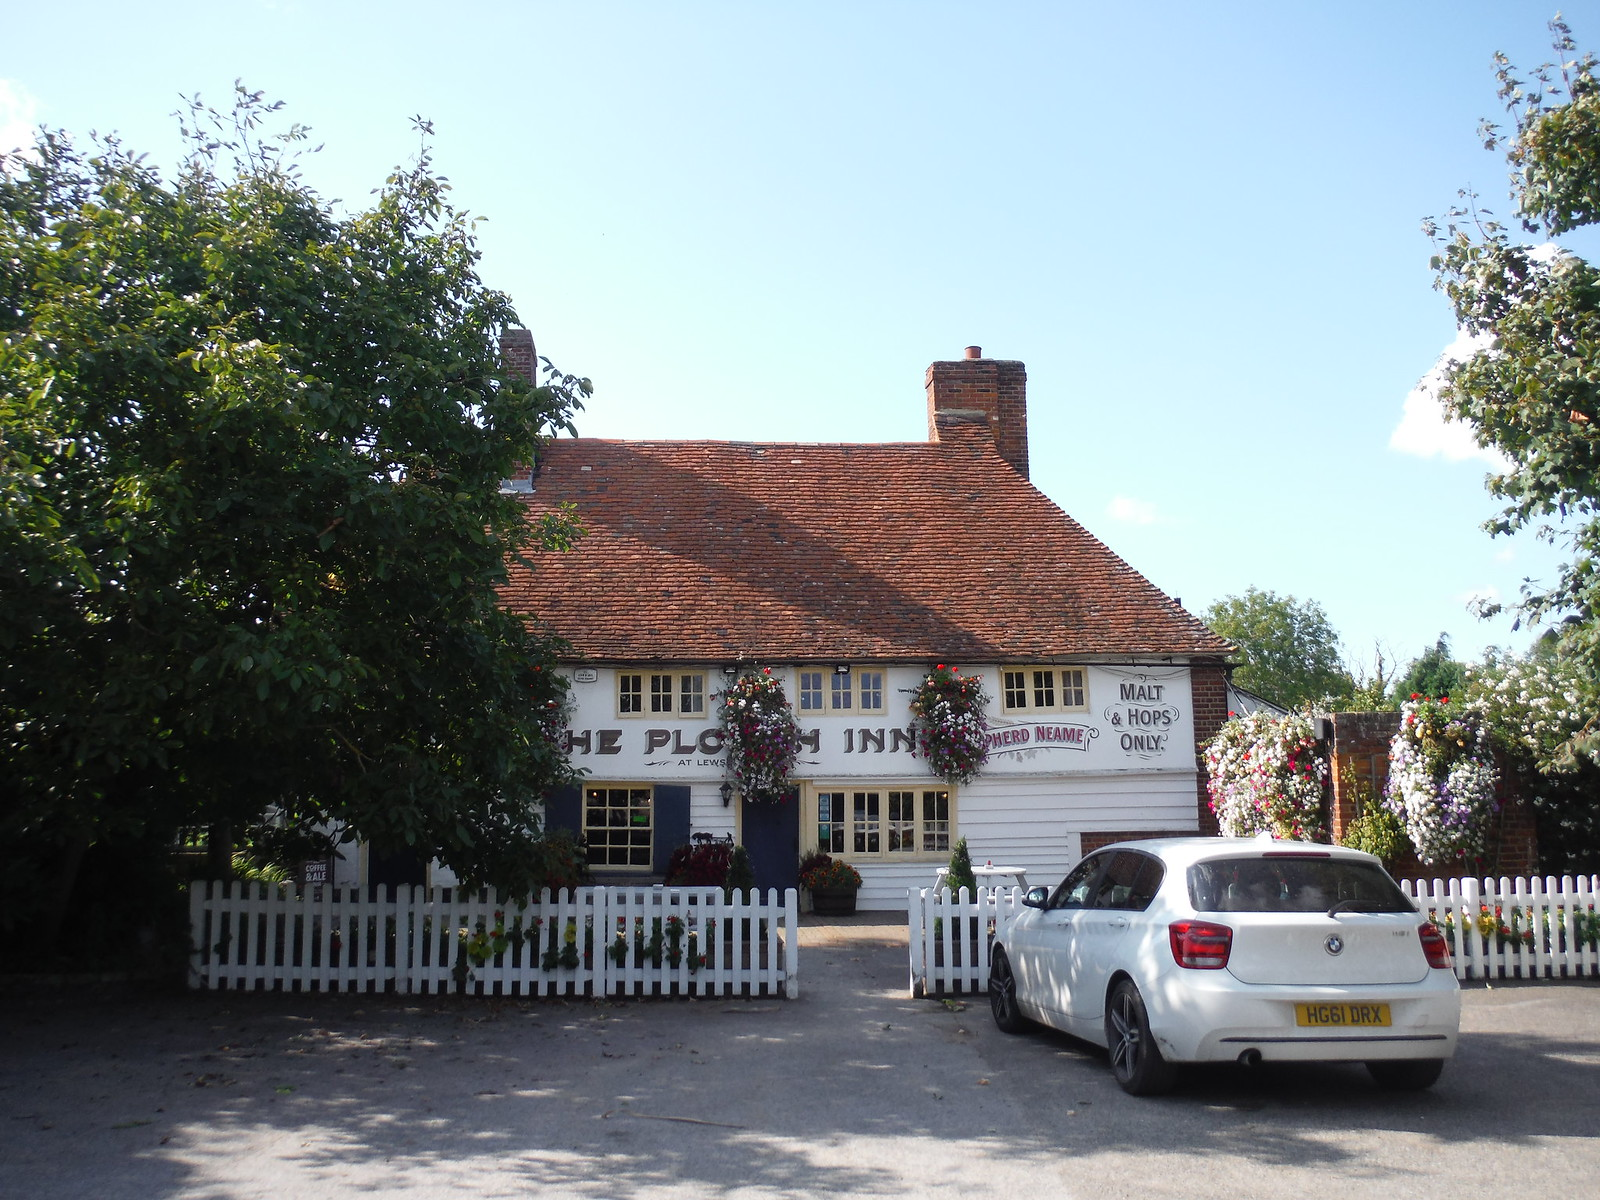 The Plough Inn, Lewson Street SWC Walk 299 - Teynham to Faversham (Morning Extension)